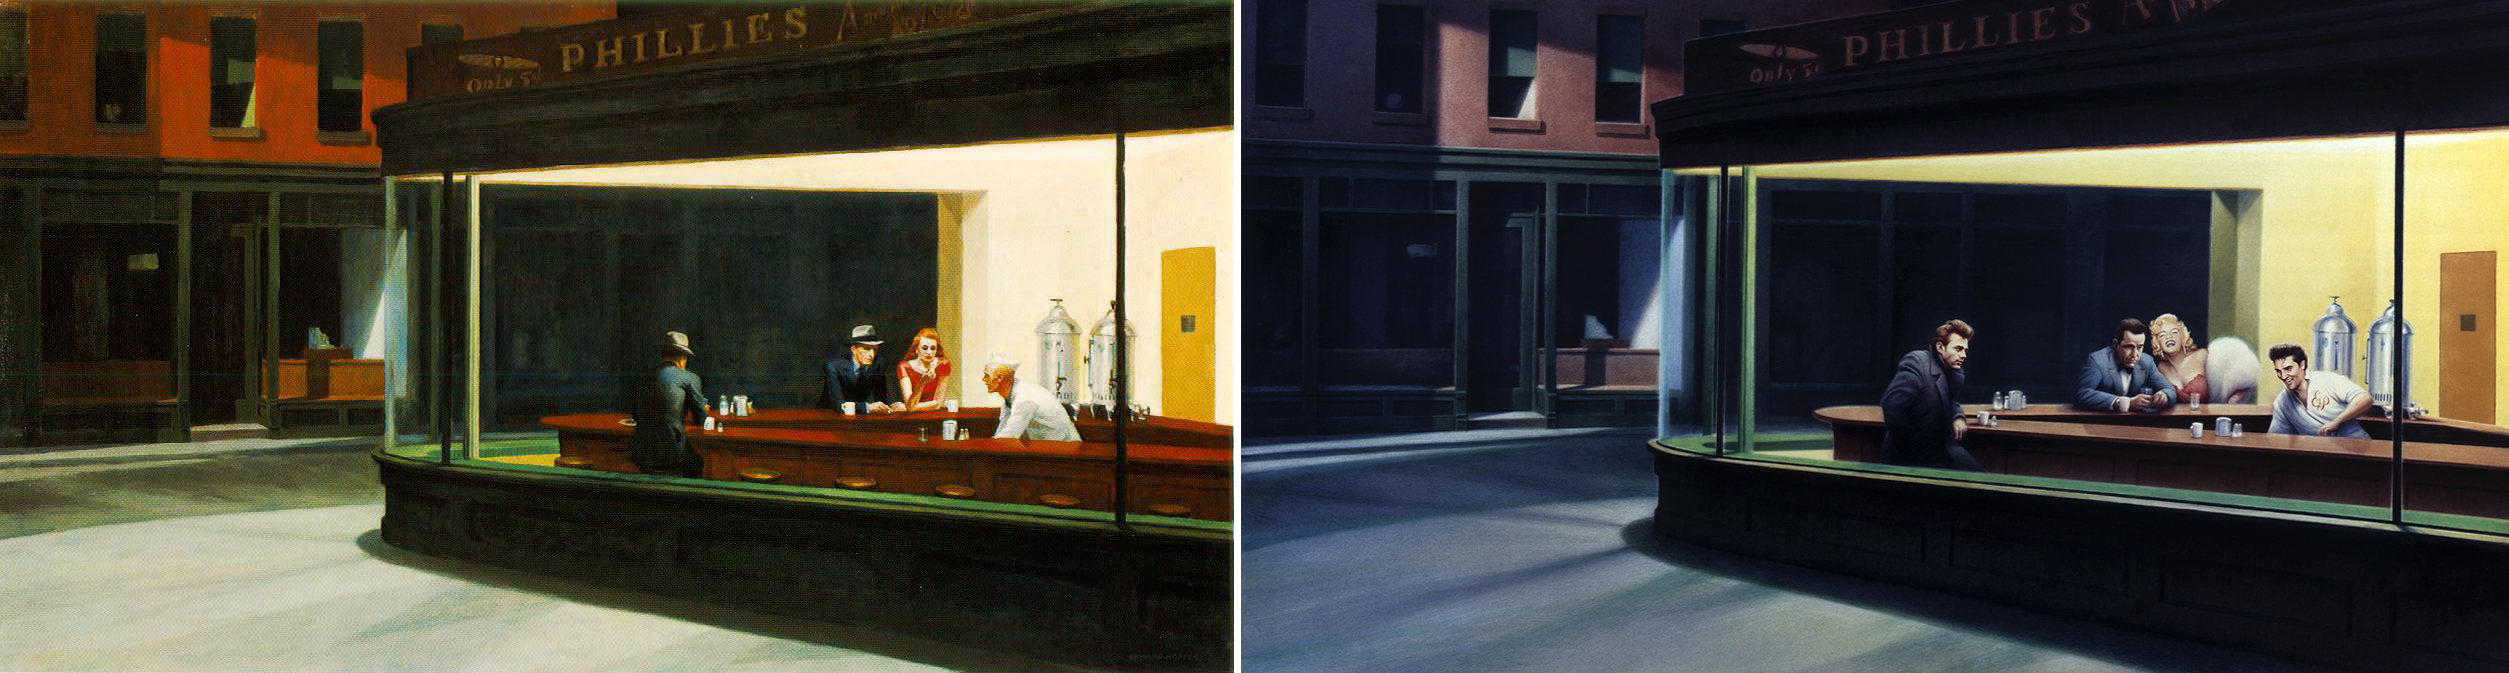 "Izquierda, ""Nighthawks"" (Edward Hopper, 1942). Derecha, ""Boulevard of Broken Dreams"" (Gottfried Helnwein, 1987)"